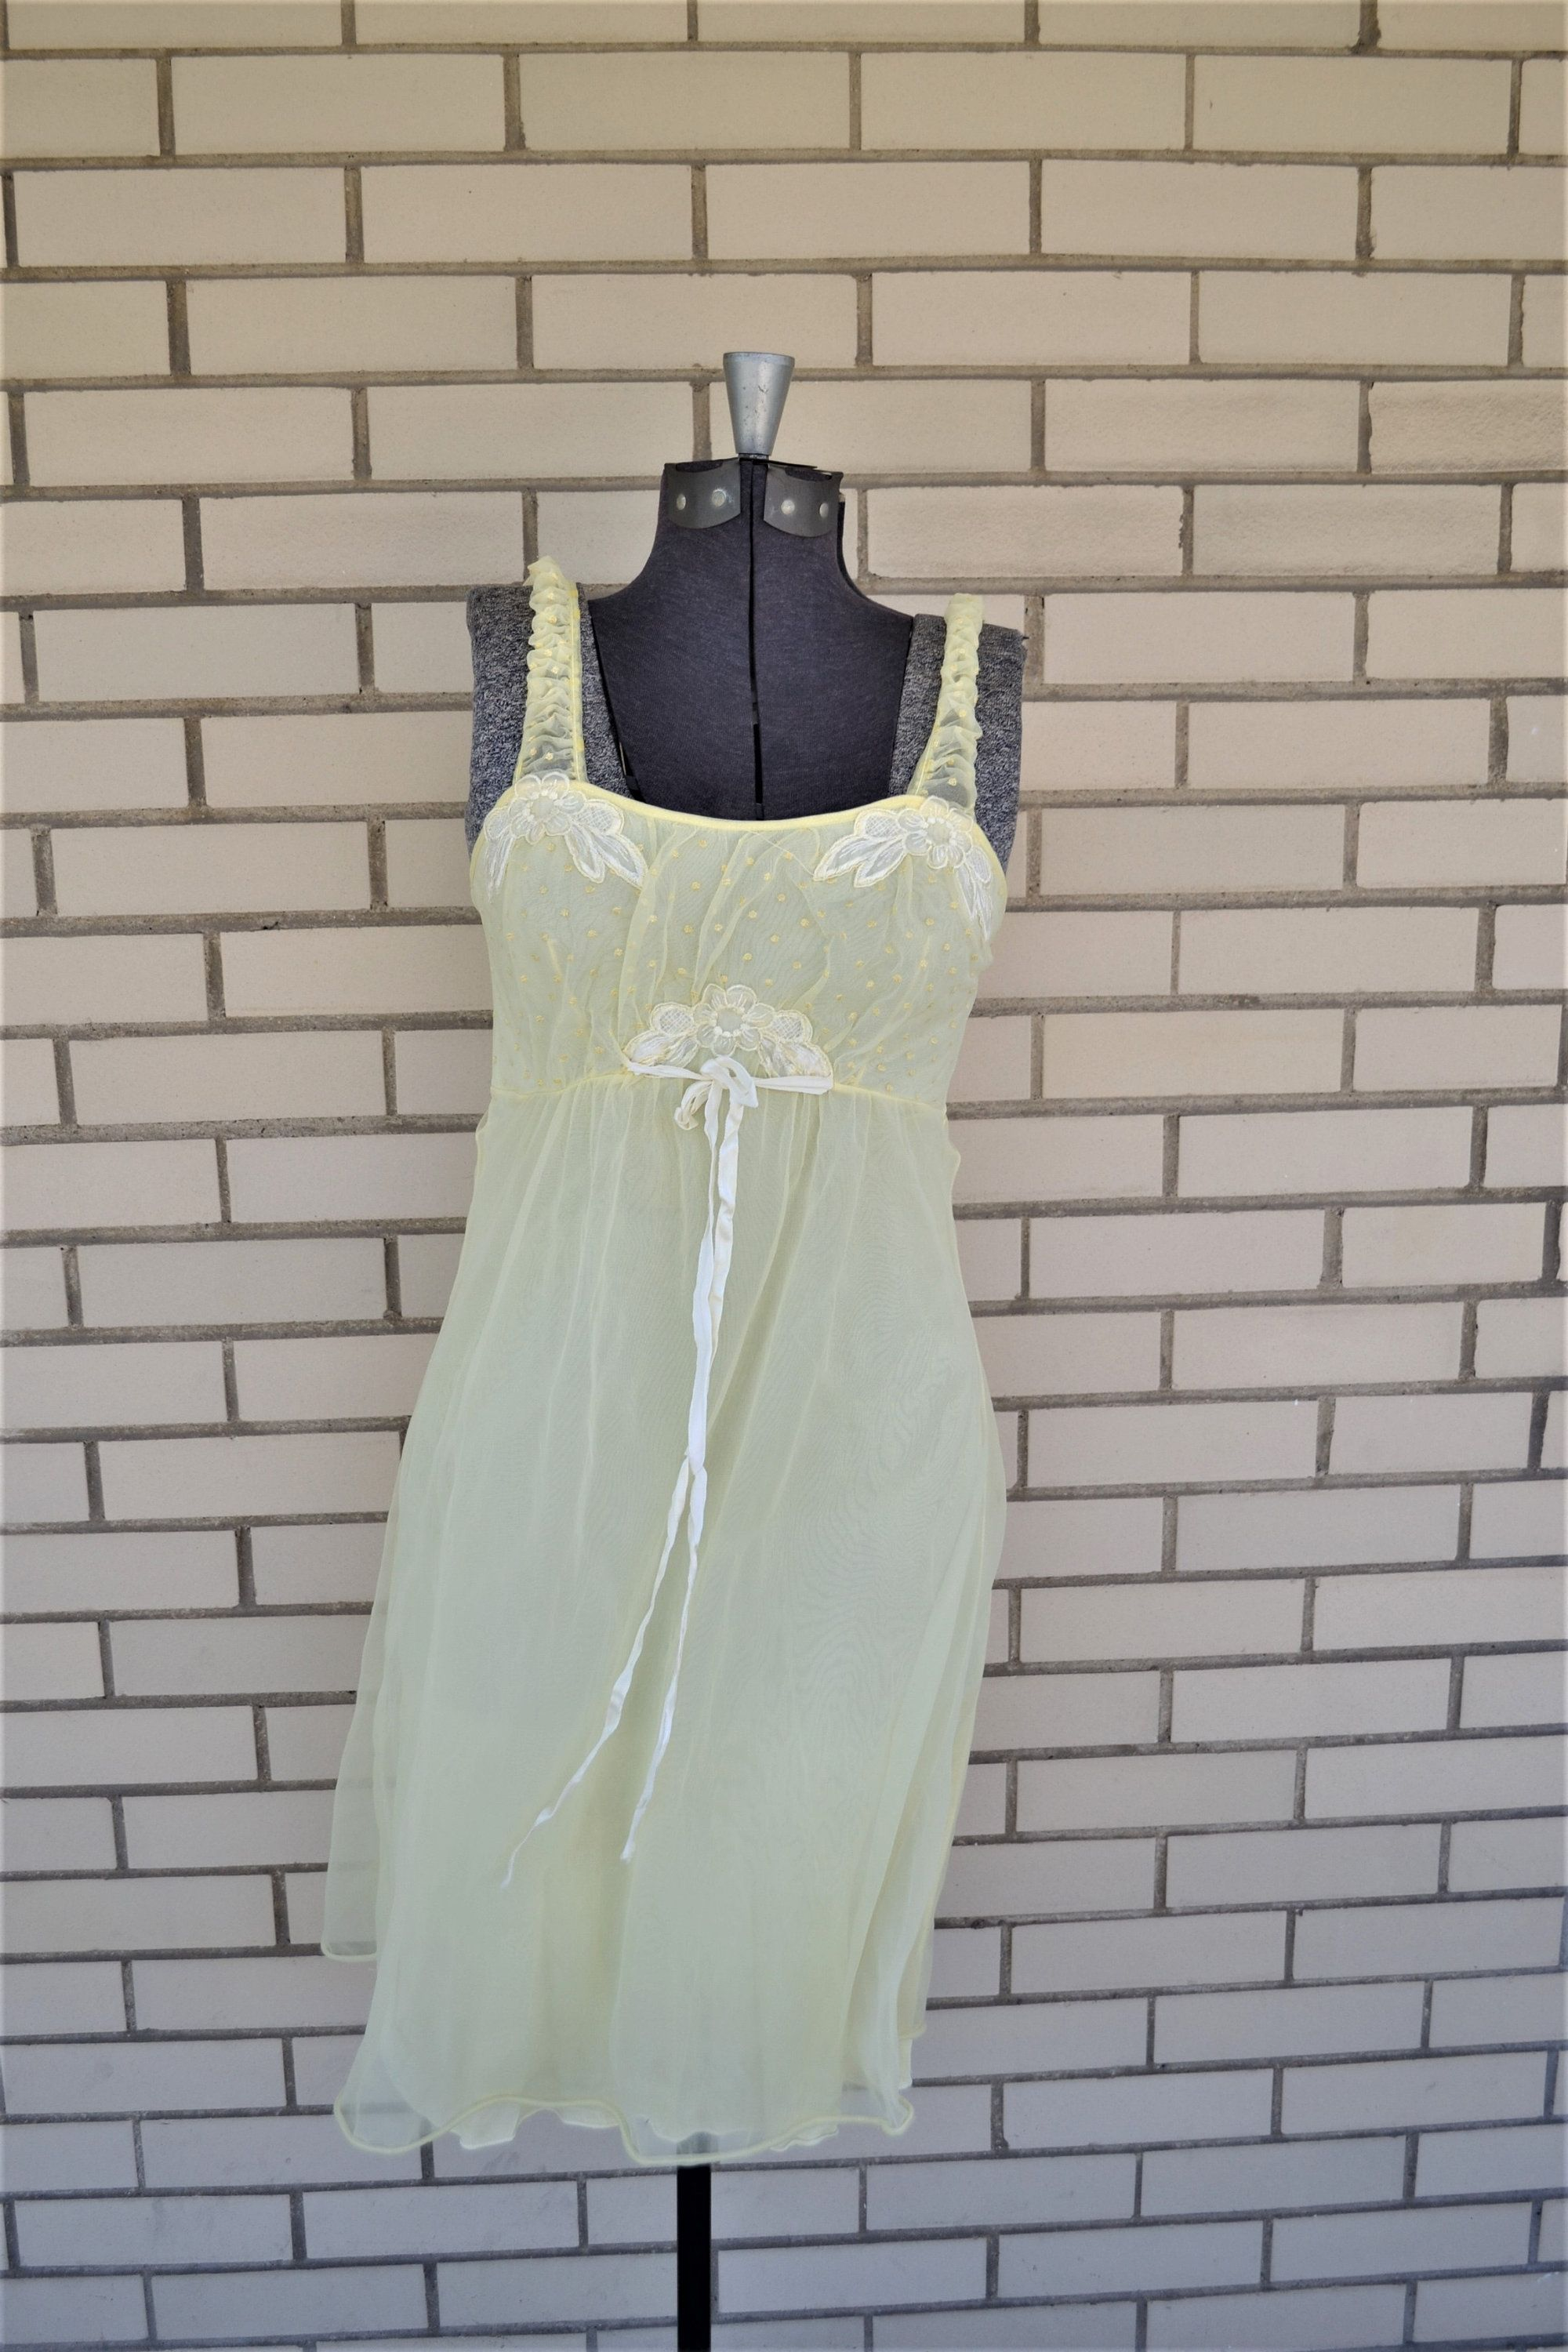 1b90e574f57ac 60s Fluffy Yellow Nightie, Vintage Nightgown Empire Waist, 1960s sheer  nightie with floral appliques and swiss polka dots by strangewaysvintage on  Etsy